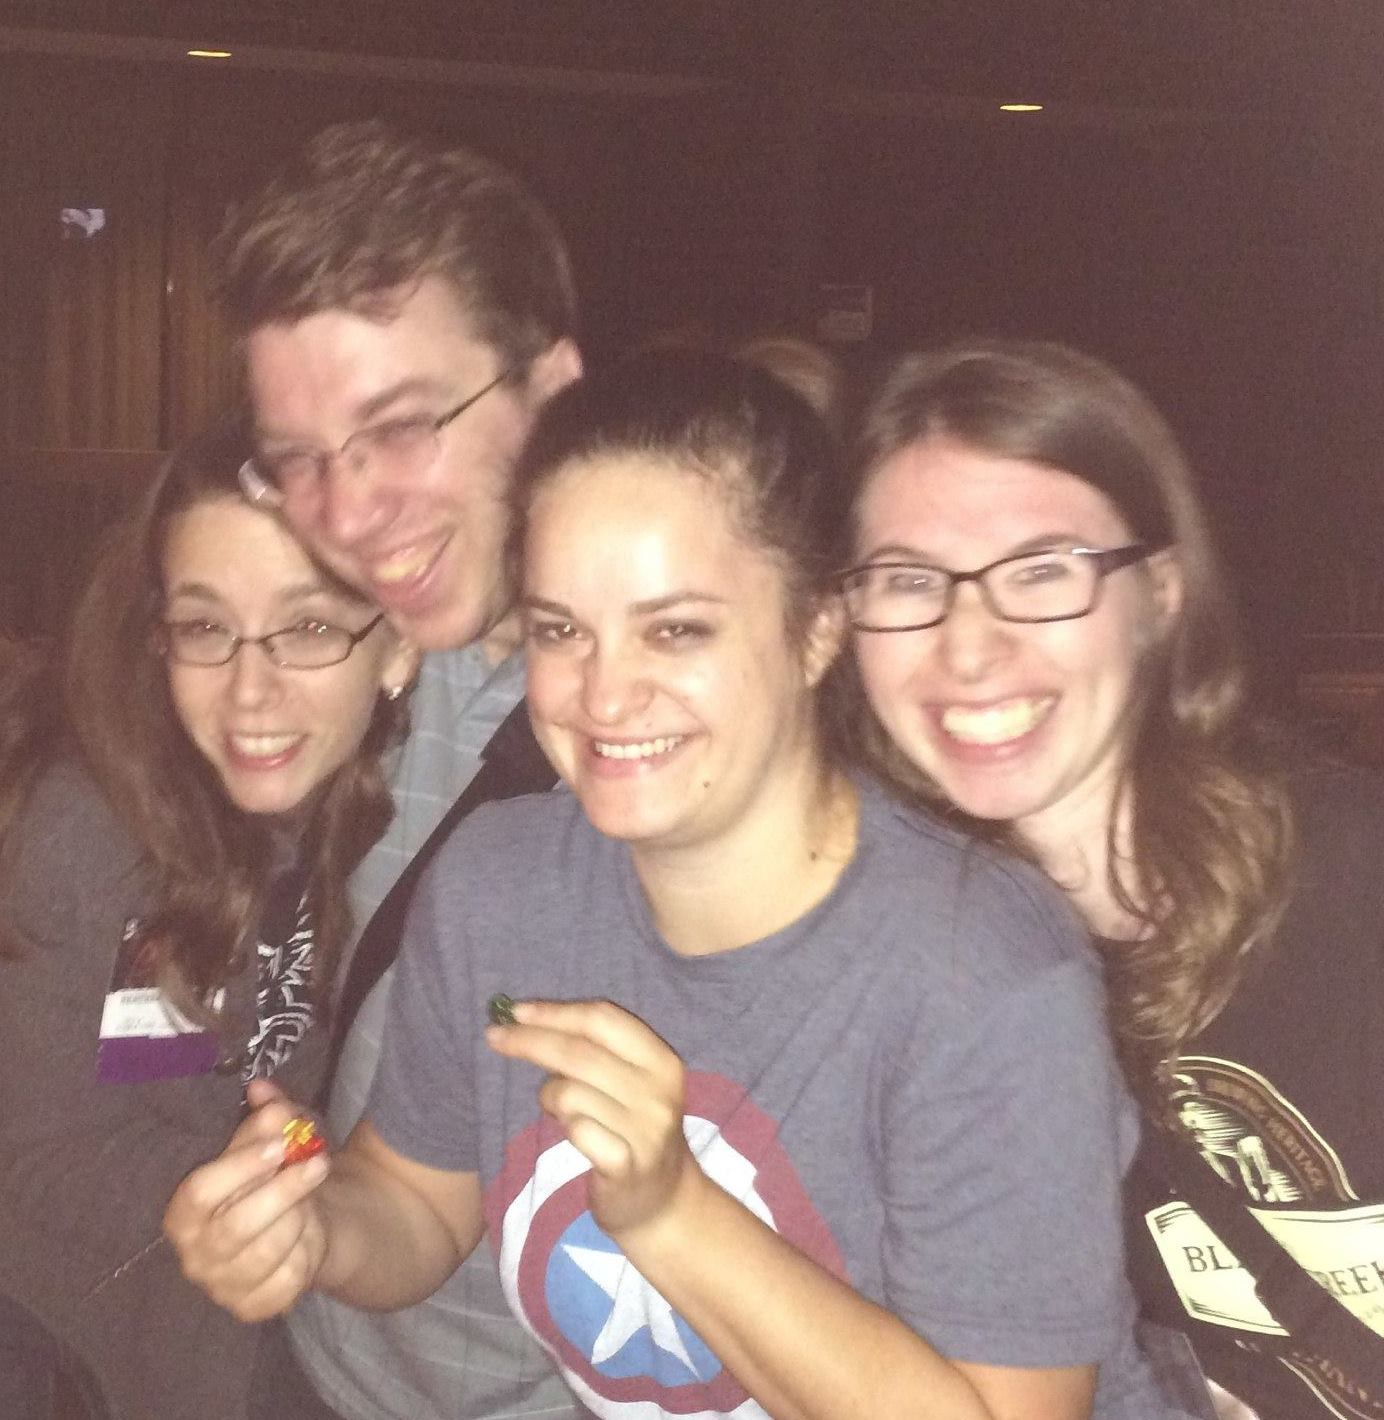 The fateful night at Balticon 2014, with the dangerous gummy bears.  (From left: Heather Welliver, P.C. Haring, Lauren Harris, K.T. Bryski)